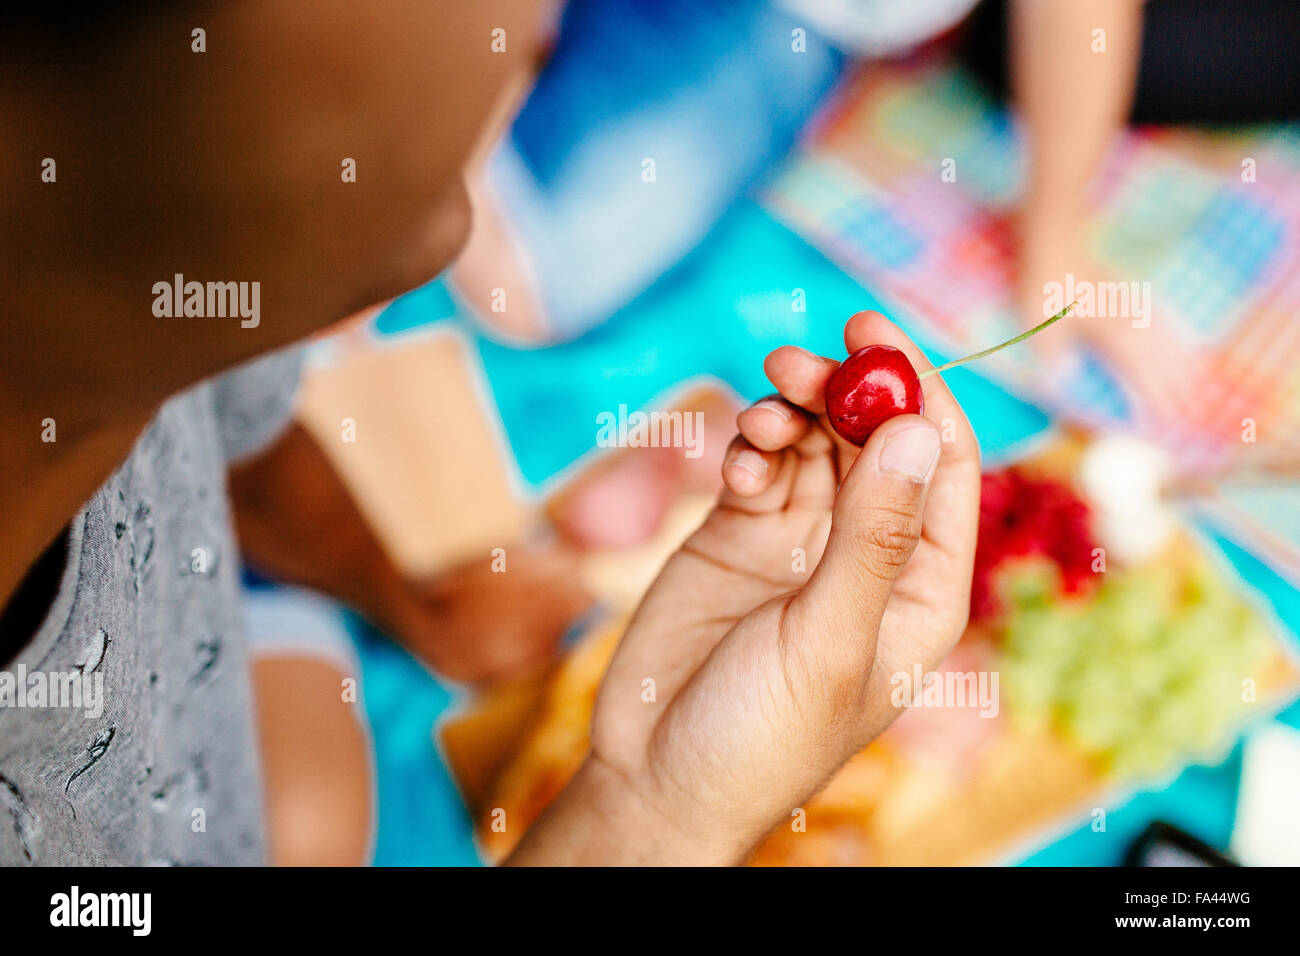 Cropped image of man holding cherry at park - Stock Image